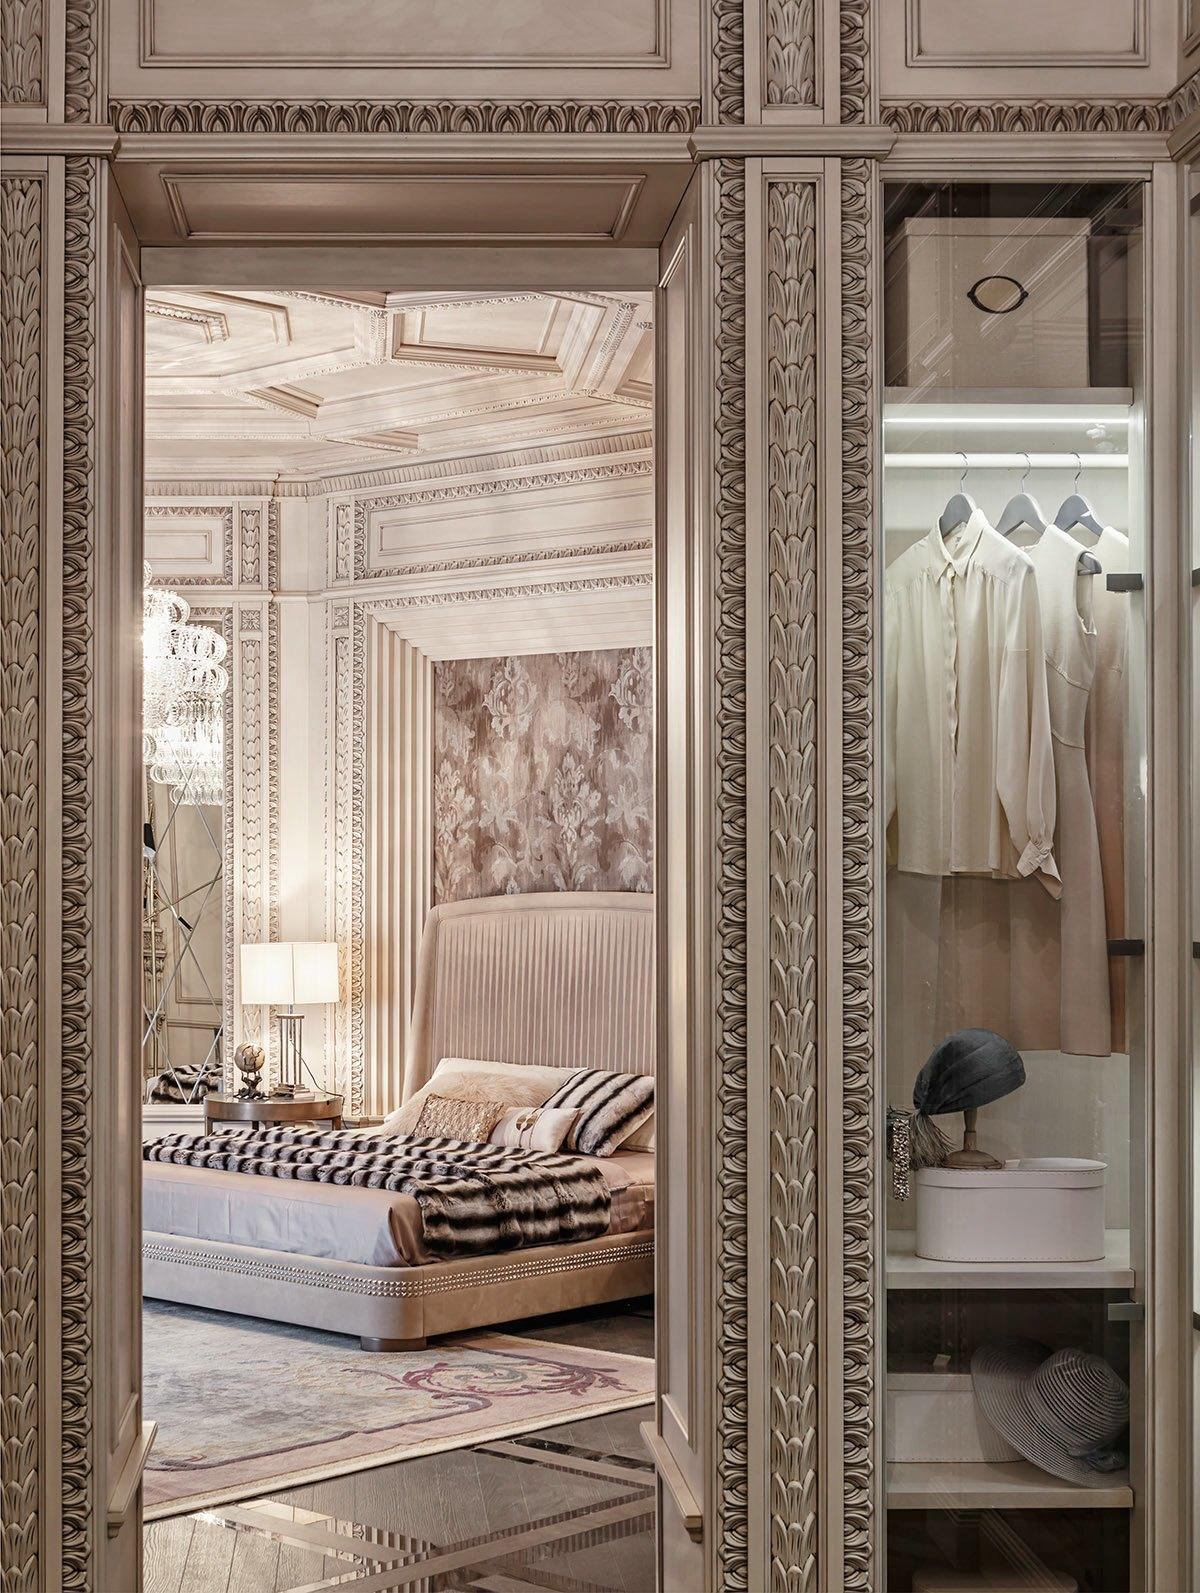 Art Deco Home neoclassical and art deco features in two luxurious interiors